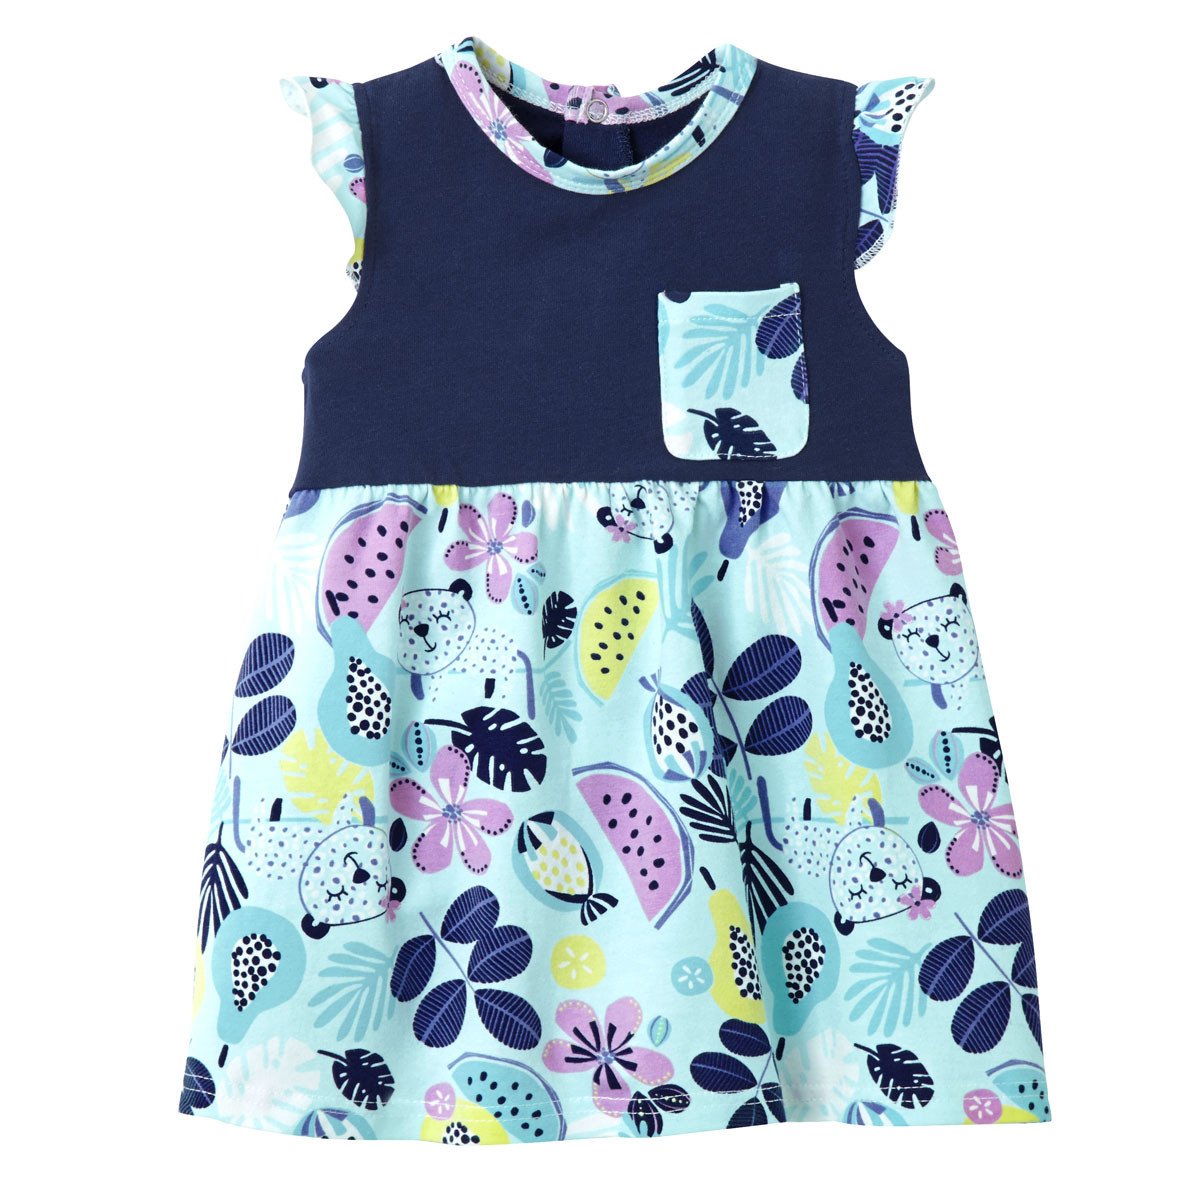 6efce09e4b1b1 Robe bébé fille Jungle Queen - PETIT BEGUIN